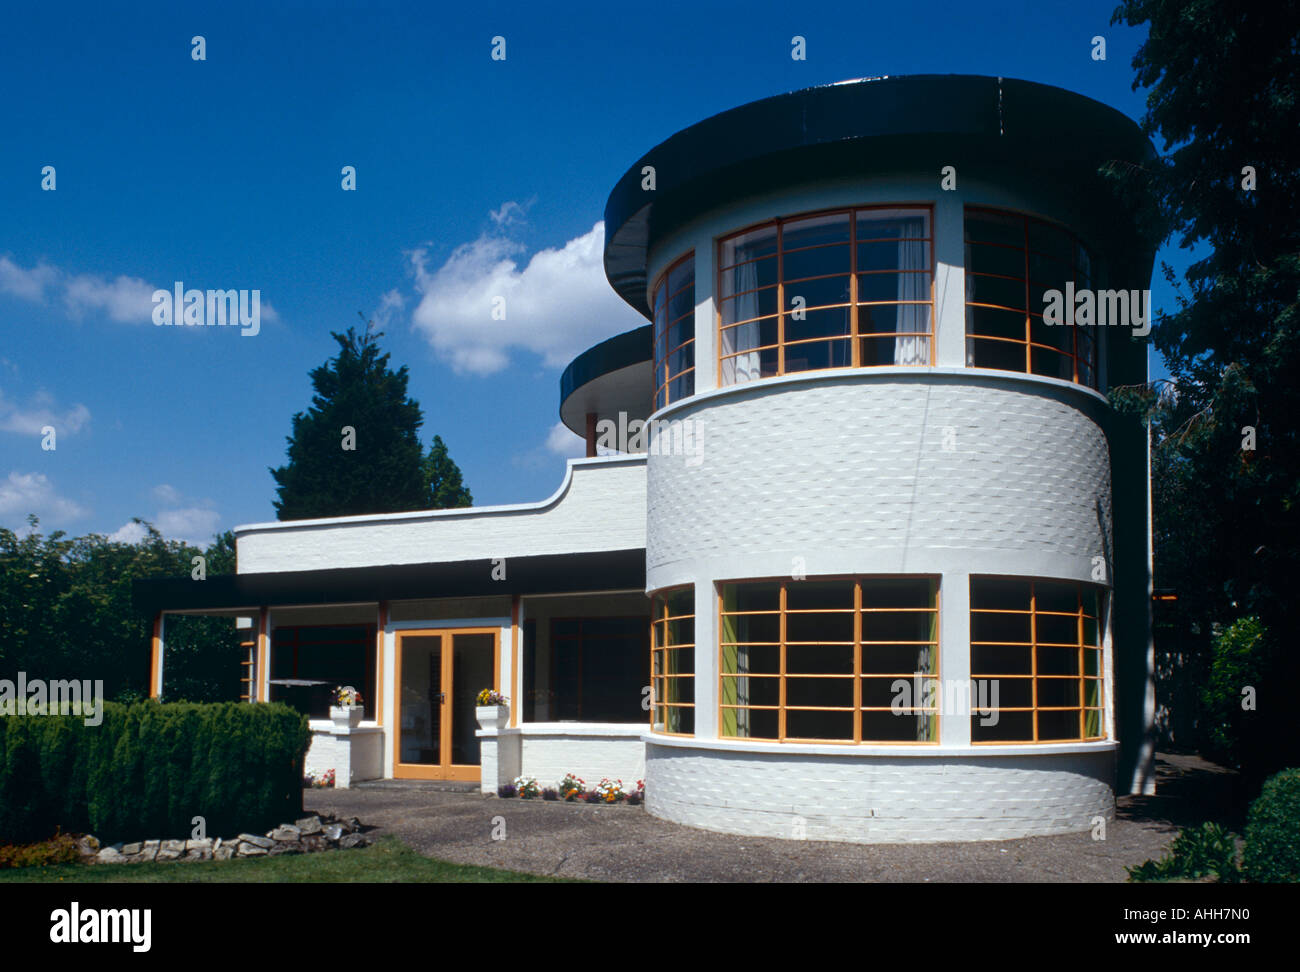 A Modern Art Deco Home Visualized In Two Styles: The Sun House In Cambridge UK. A Grade 2 Listed Home In